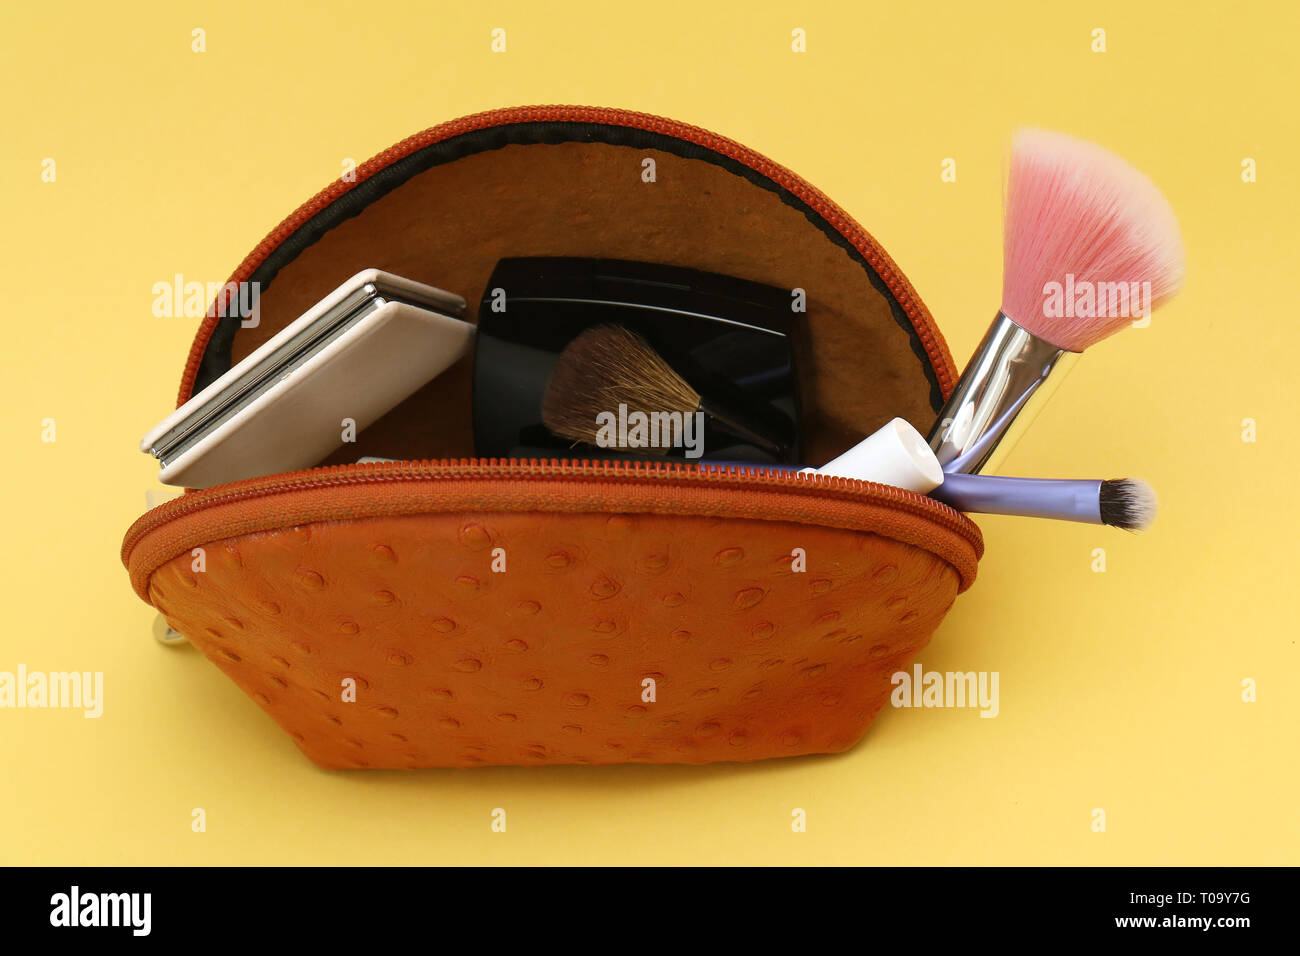 Small leather pouch with makeup and brushes accessories - Stock Image